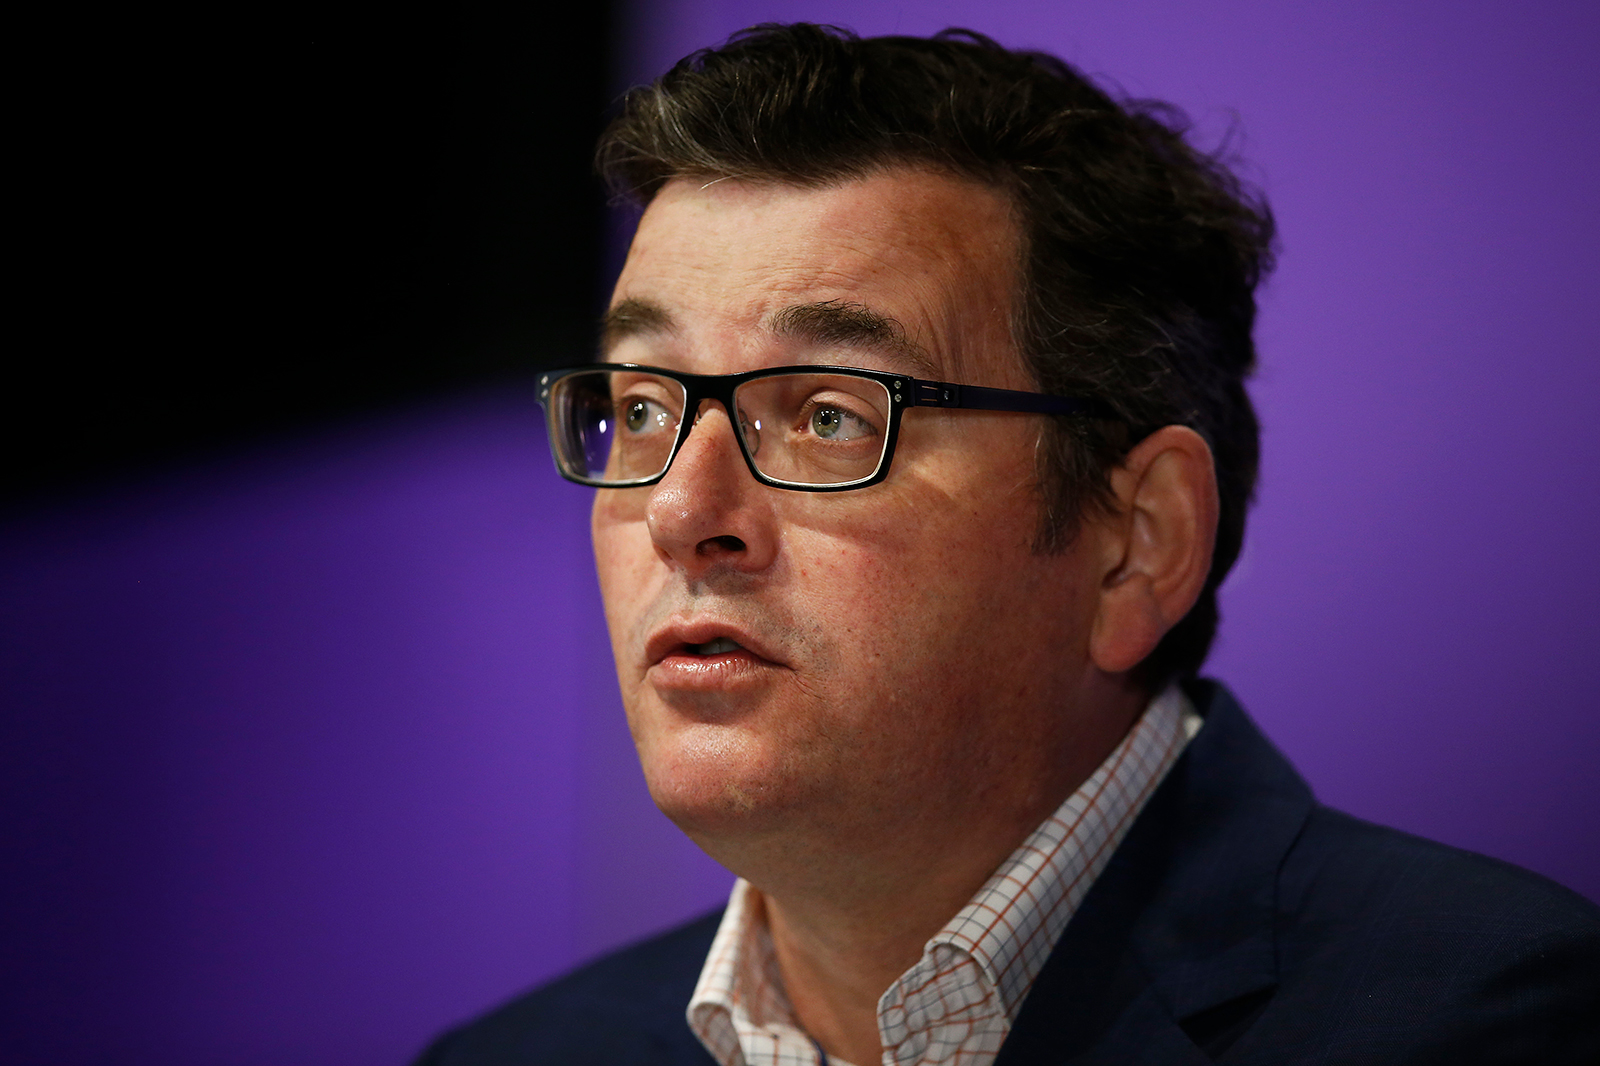 Victorian Premier Daniel Andrews speaks to the media during a news conference in Melbourne, Australia, on September 14.